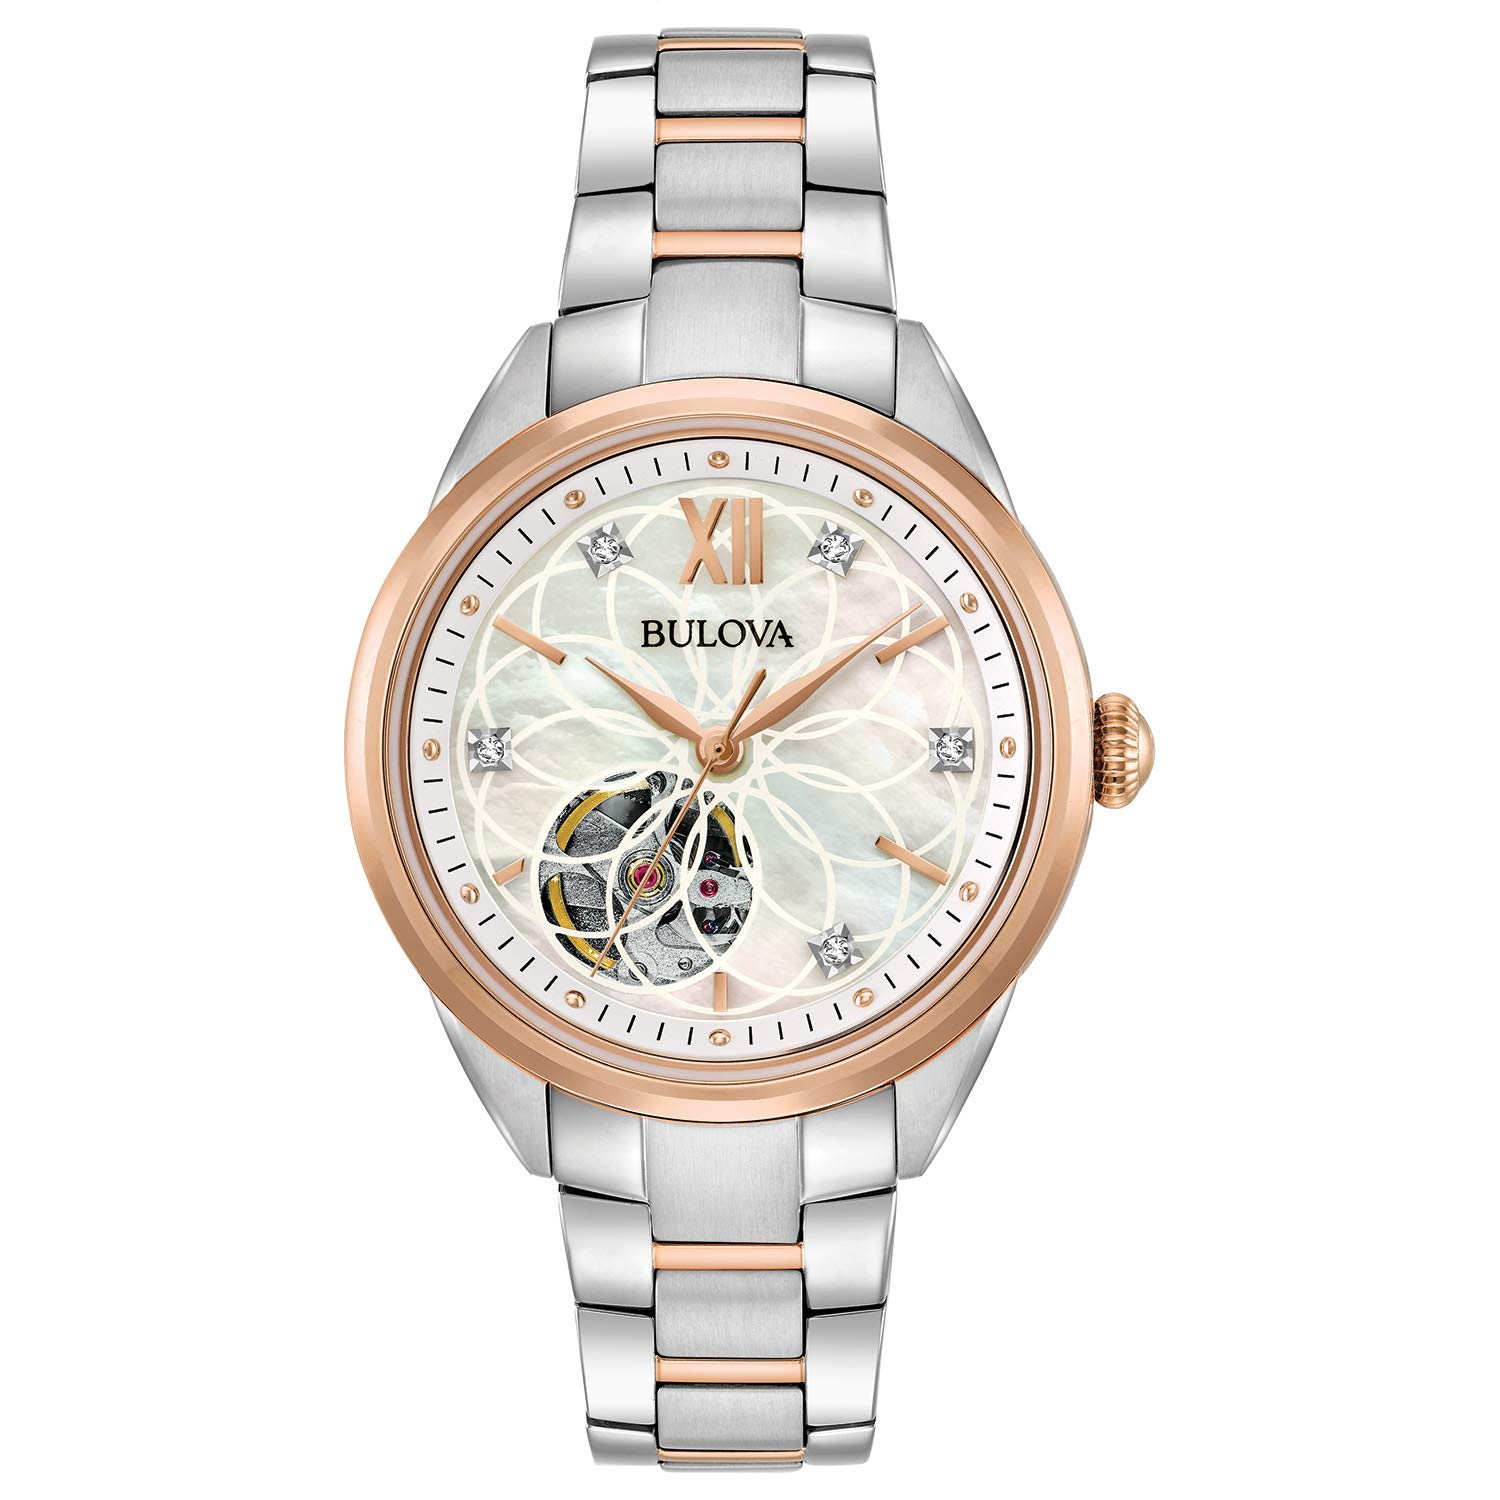 Bulova Women's Automatic-self-Wind Watch with Stainless-Steel Strap, Two Tone, 15 (Model: 98P170